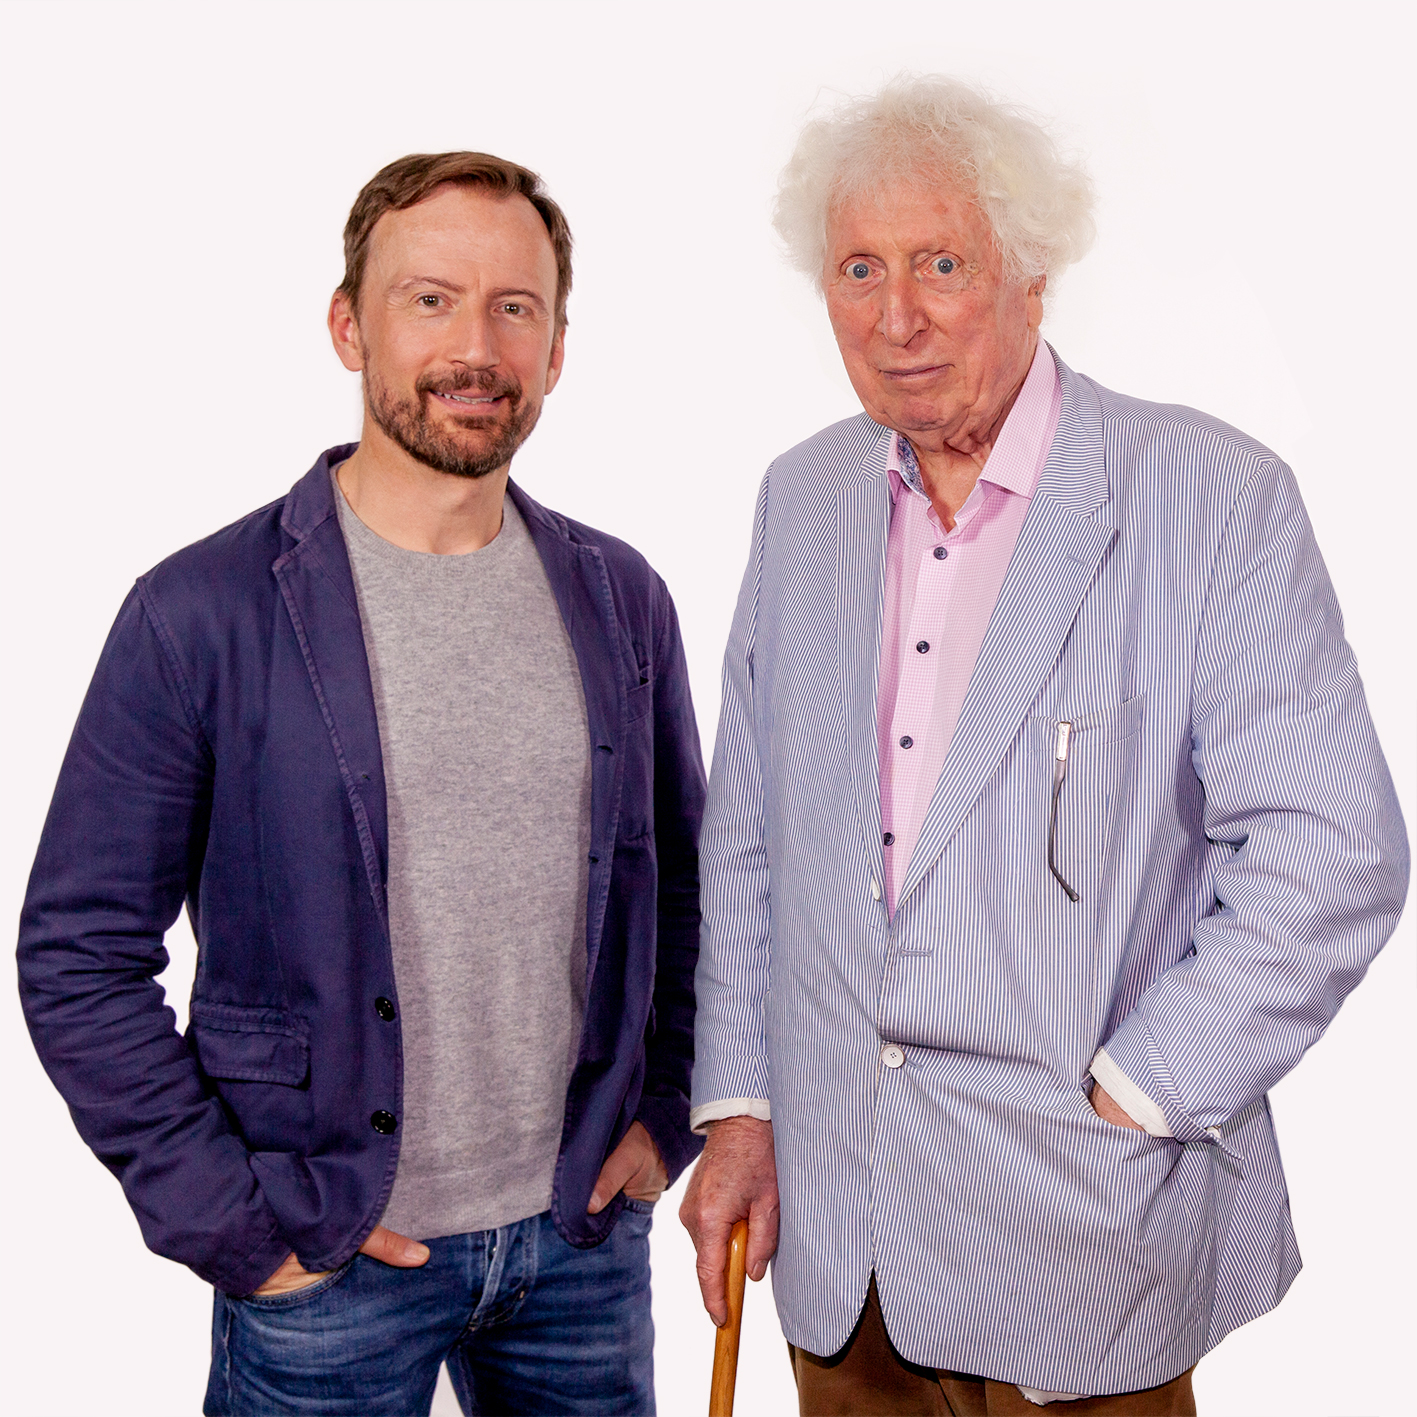 Anthony Howell (Alan Turing) and Tom Baker (The Doctor) (c) Paul Midcalf Doctor Who Fourth Doctor Worlds Beyond